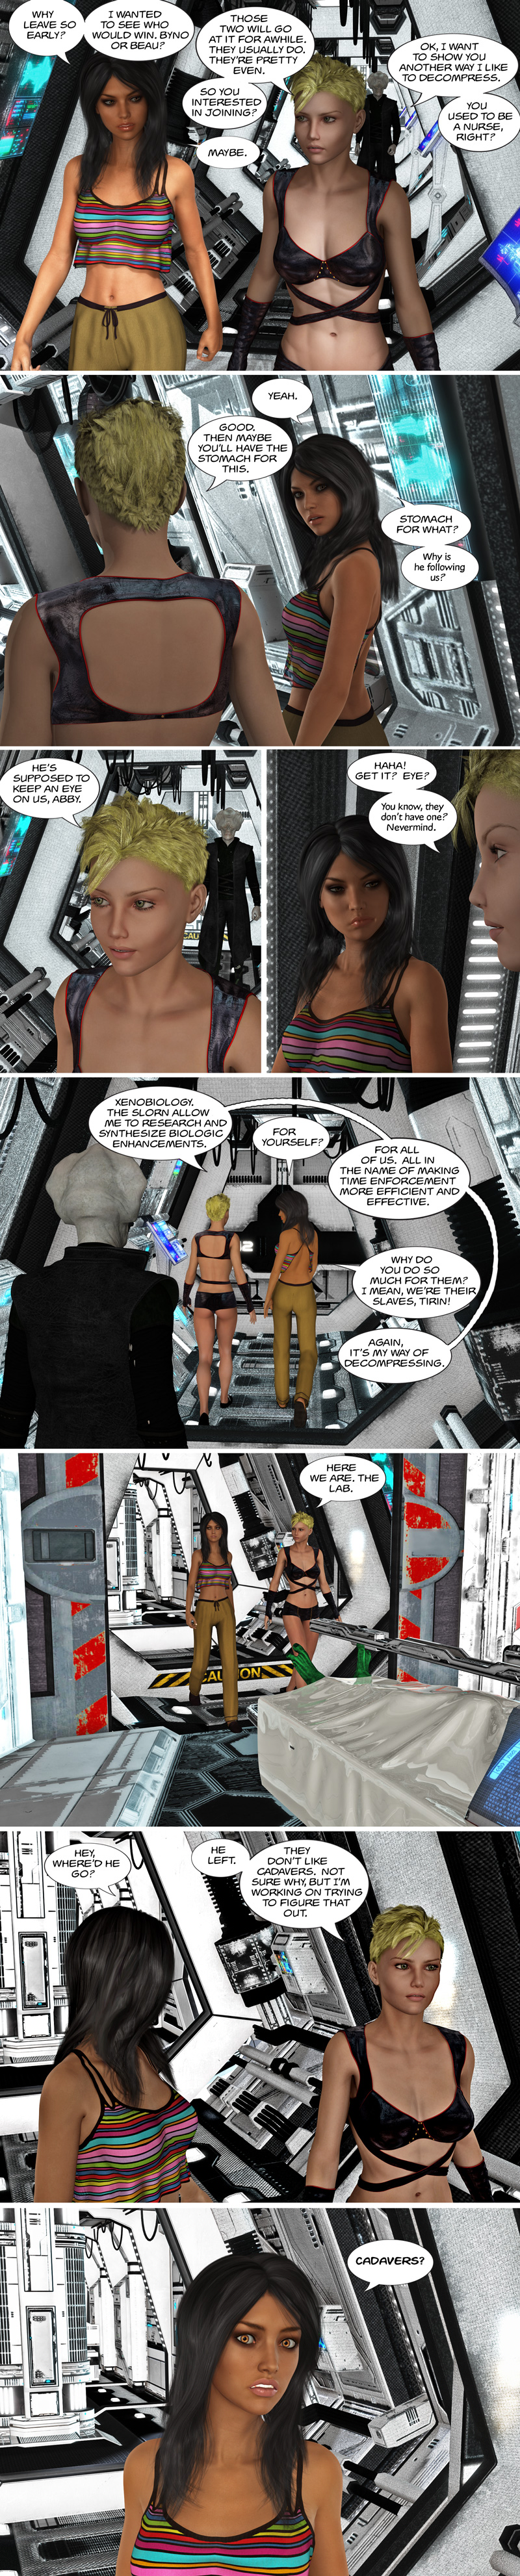 Chapter 12, page 18 – Tirin shows Abby around, including the cadavers